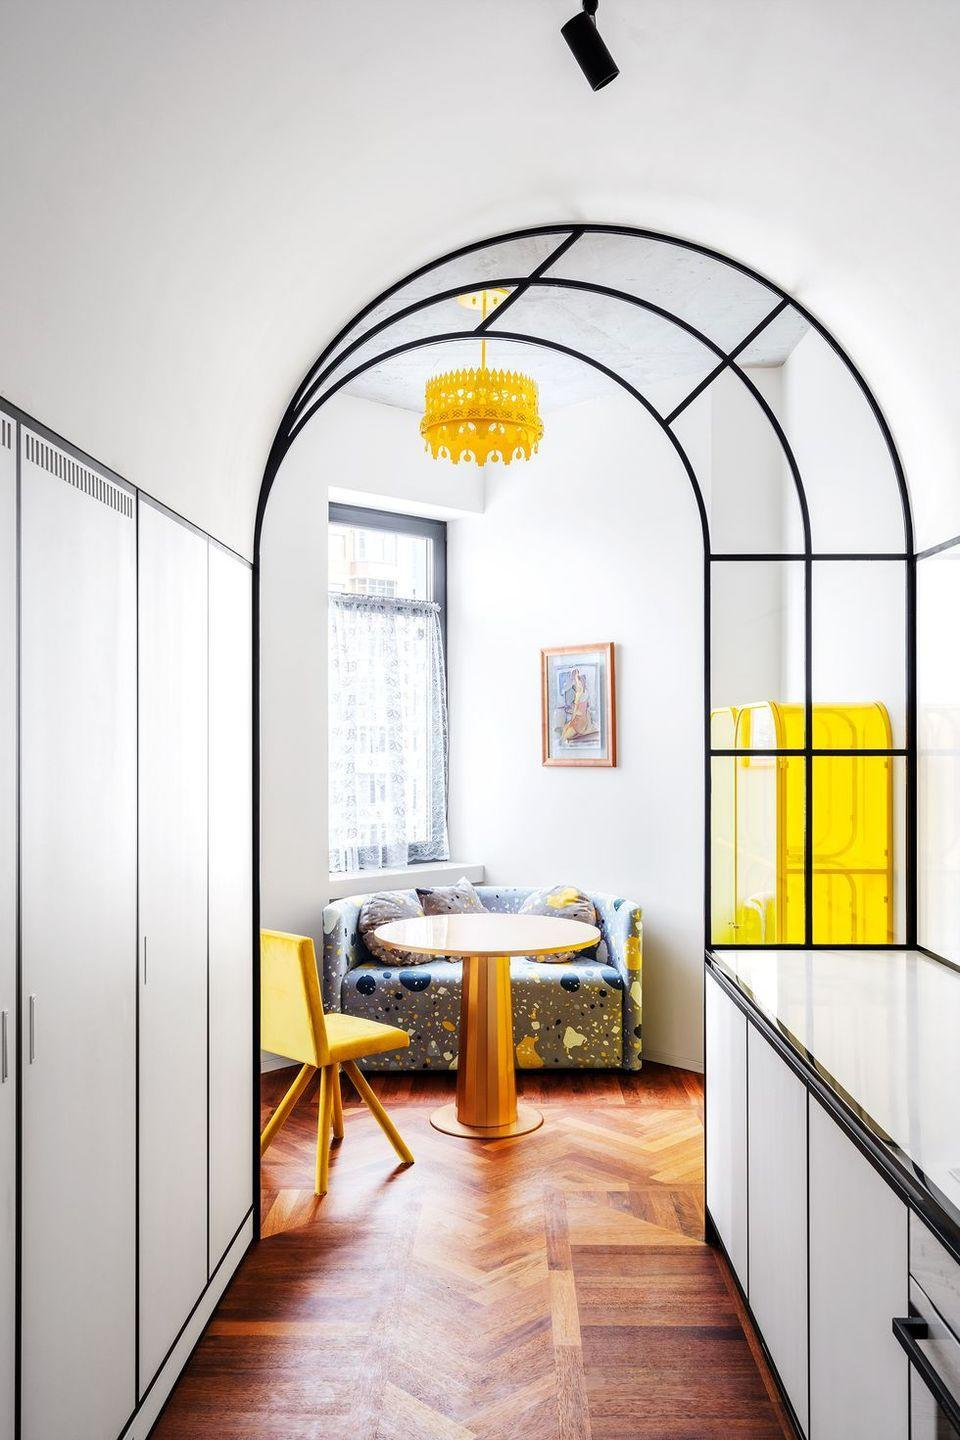 """<p><a href=""""http://crosby-studios.com/"""" rel=""""nofollow noopener"""" target=""""_blank"""" data-ylk=""""slk:Crosby Studios"""" class=""""link rapid-noclick-resp"""">Crosby Studios</a> used glass interiors to frame a tinny breakfast nook off a gallery kitchen. It makes the eat-in kitchen feel a little larger and distinct since it separates the cooking and dining areas—but the transparent arch ensures that the two spaces can still share the light. If you're in a super small space you don't want to or a rental that you can't alter, slide in a settee or oversized armchair. It will feel more like a banquette while still accommodating your needs. </p>"""